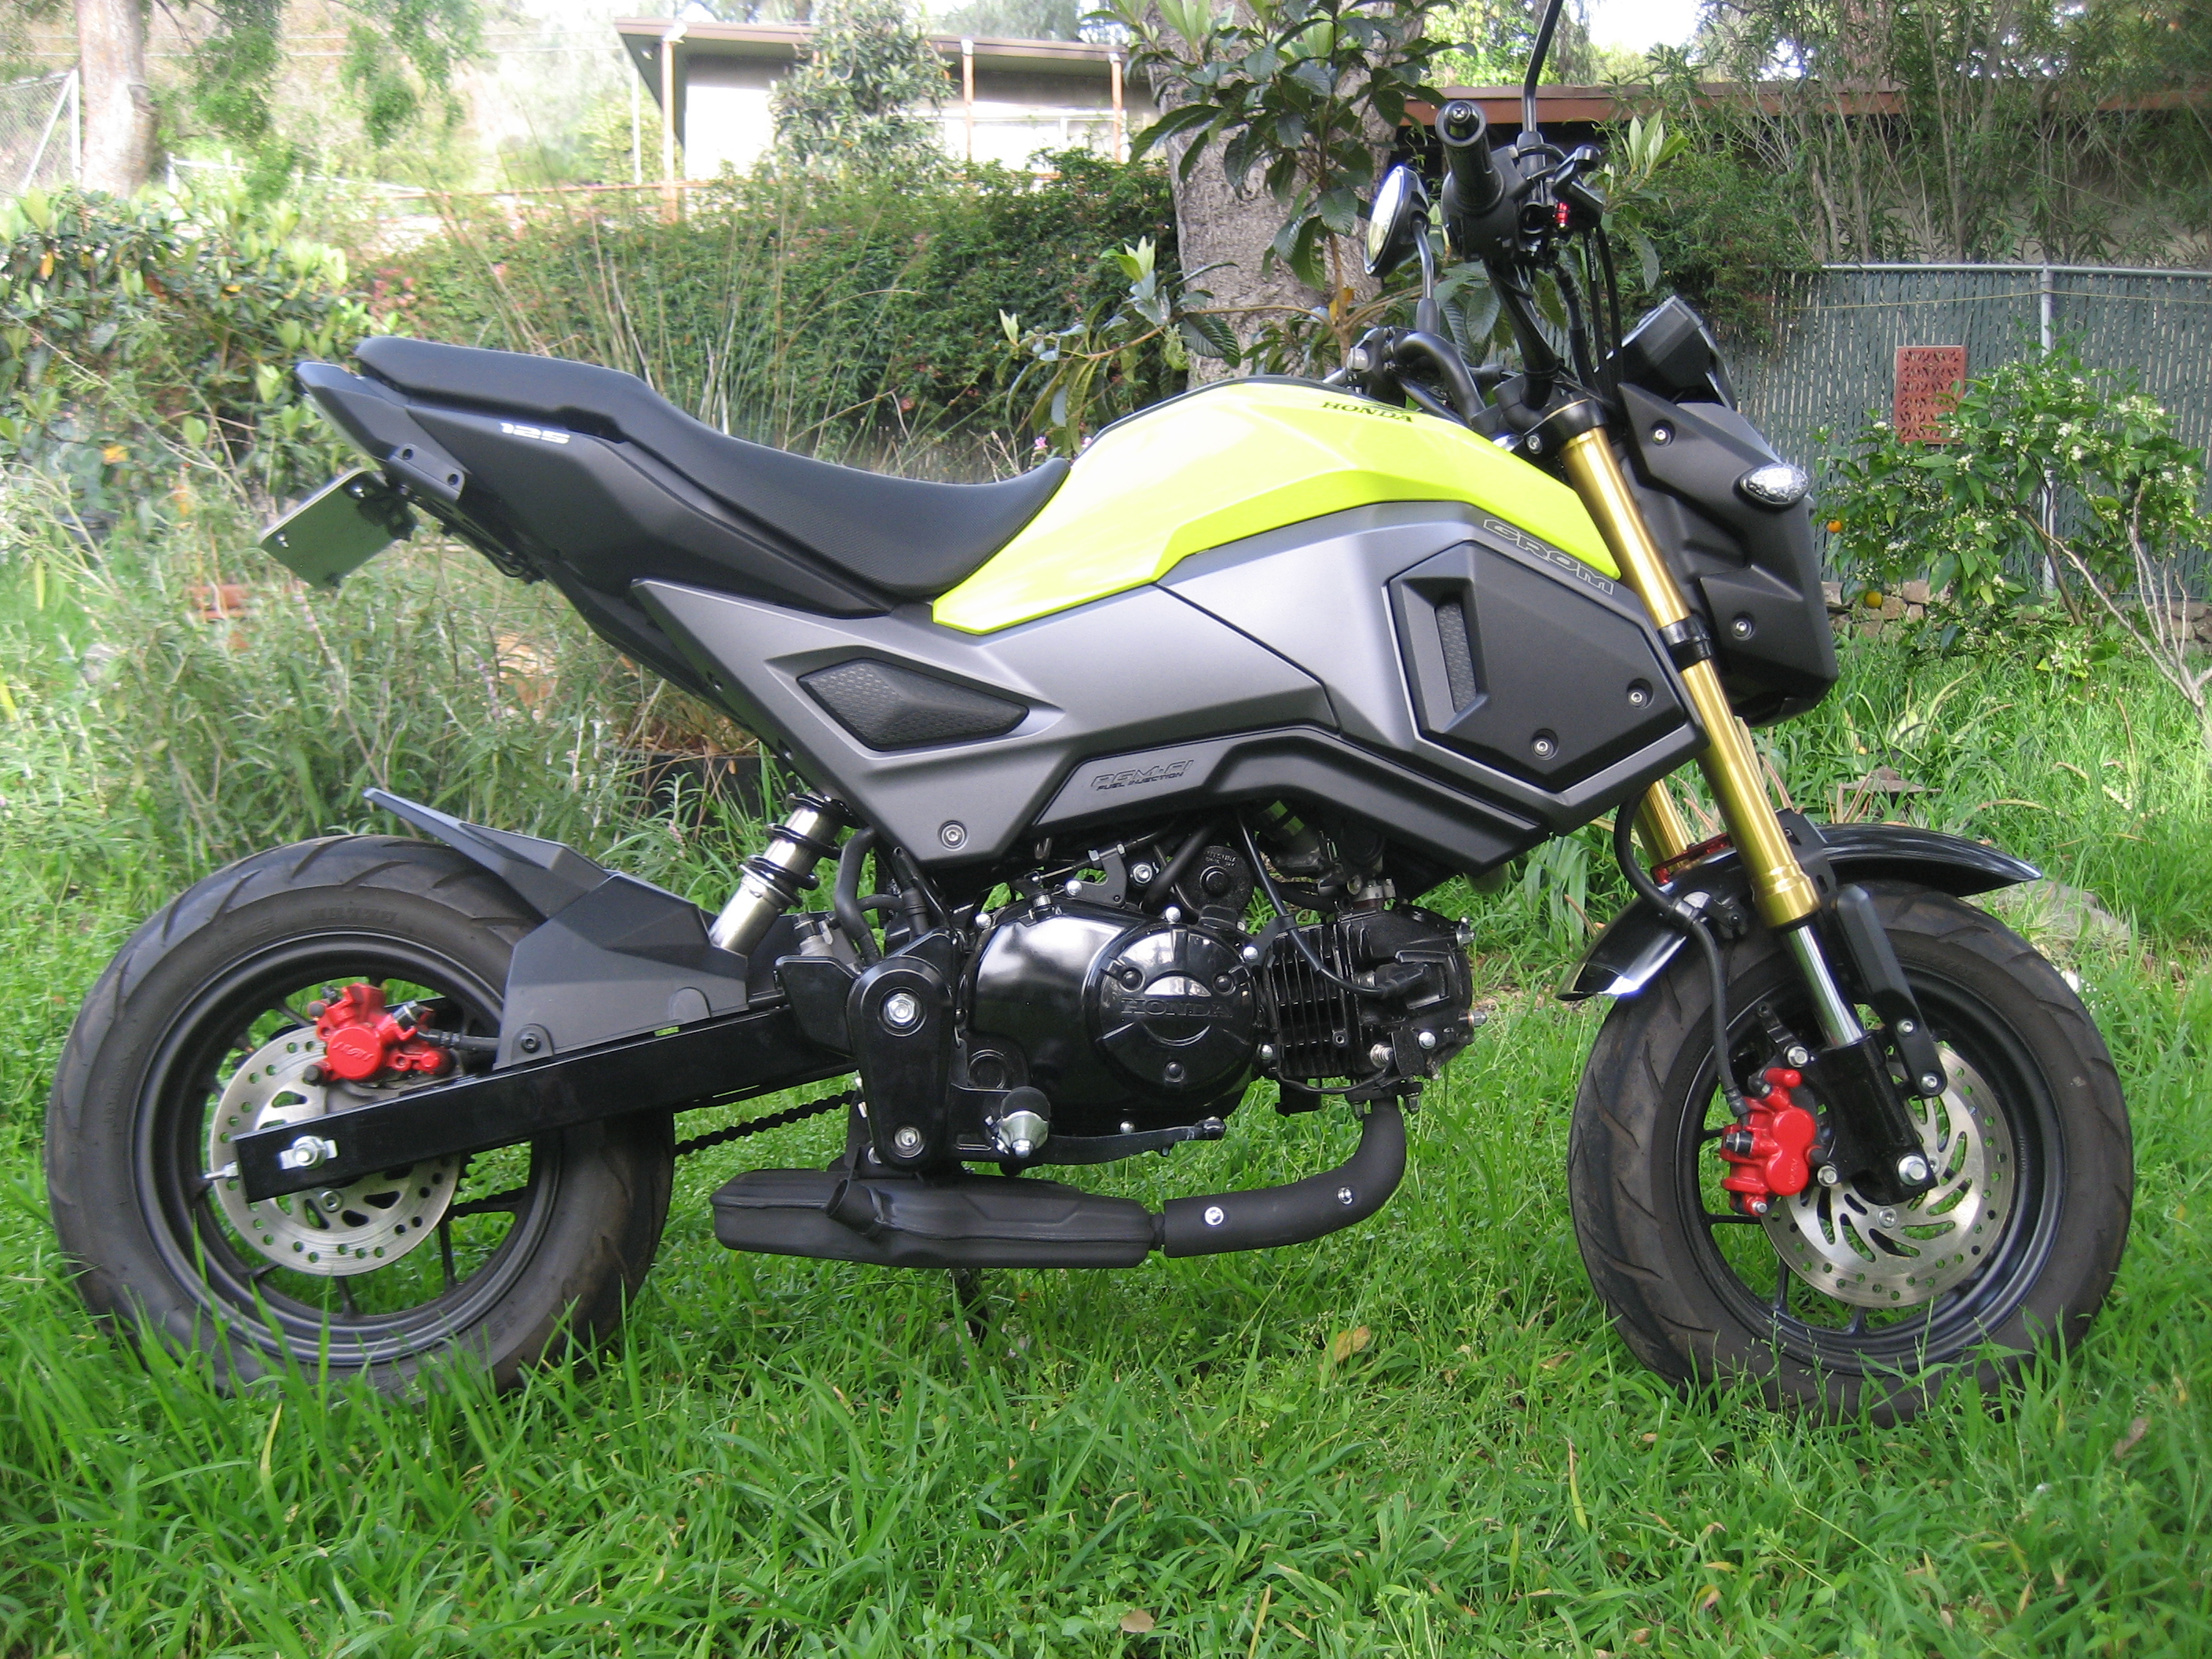 Which exhaust to buy? Msx125 sf-img_1070.jpg